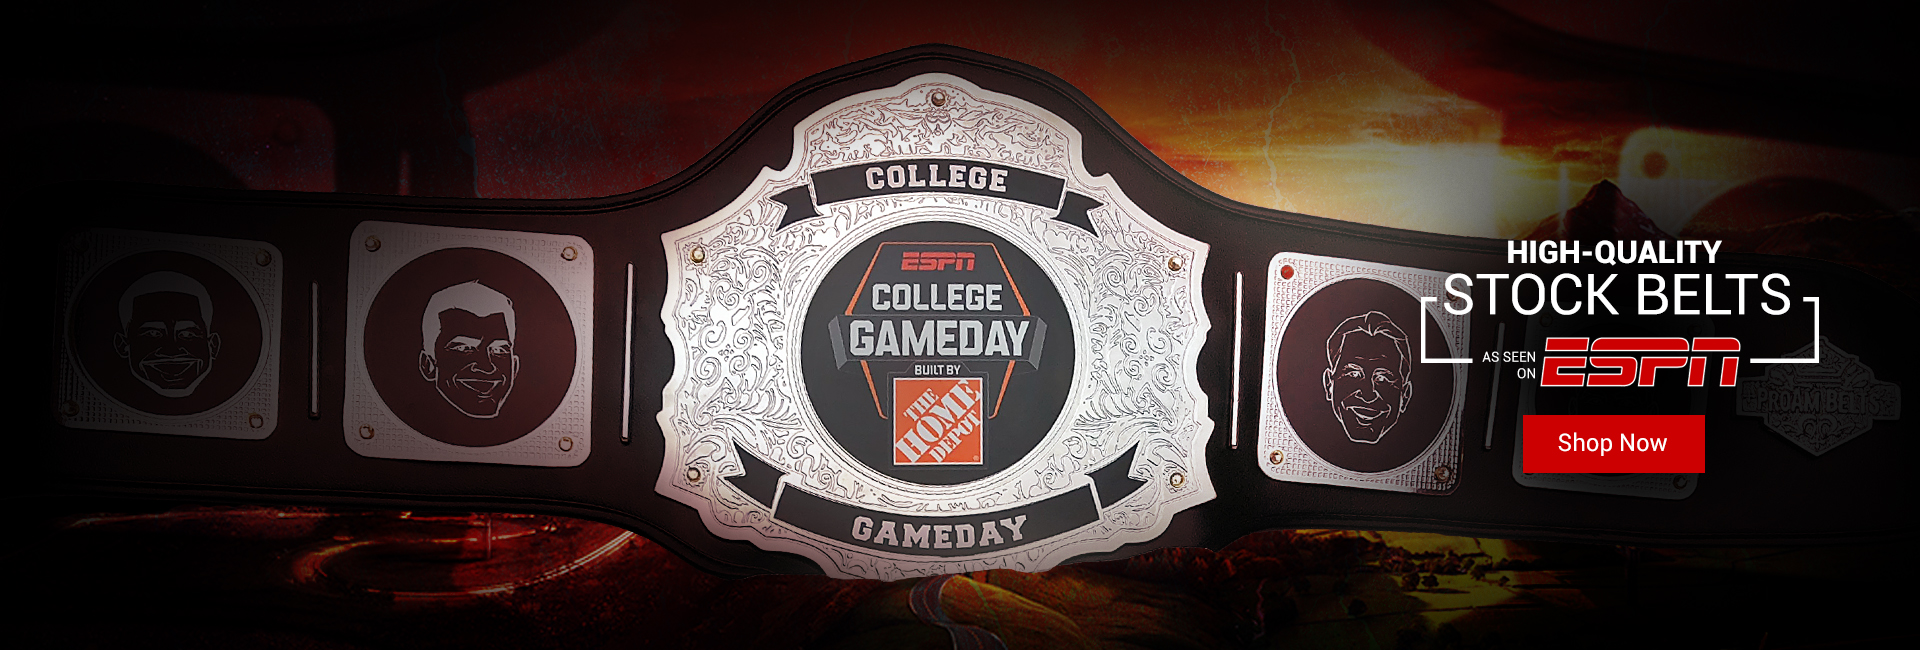 ESPN College Game Day Championship Belt